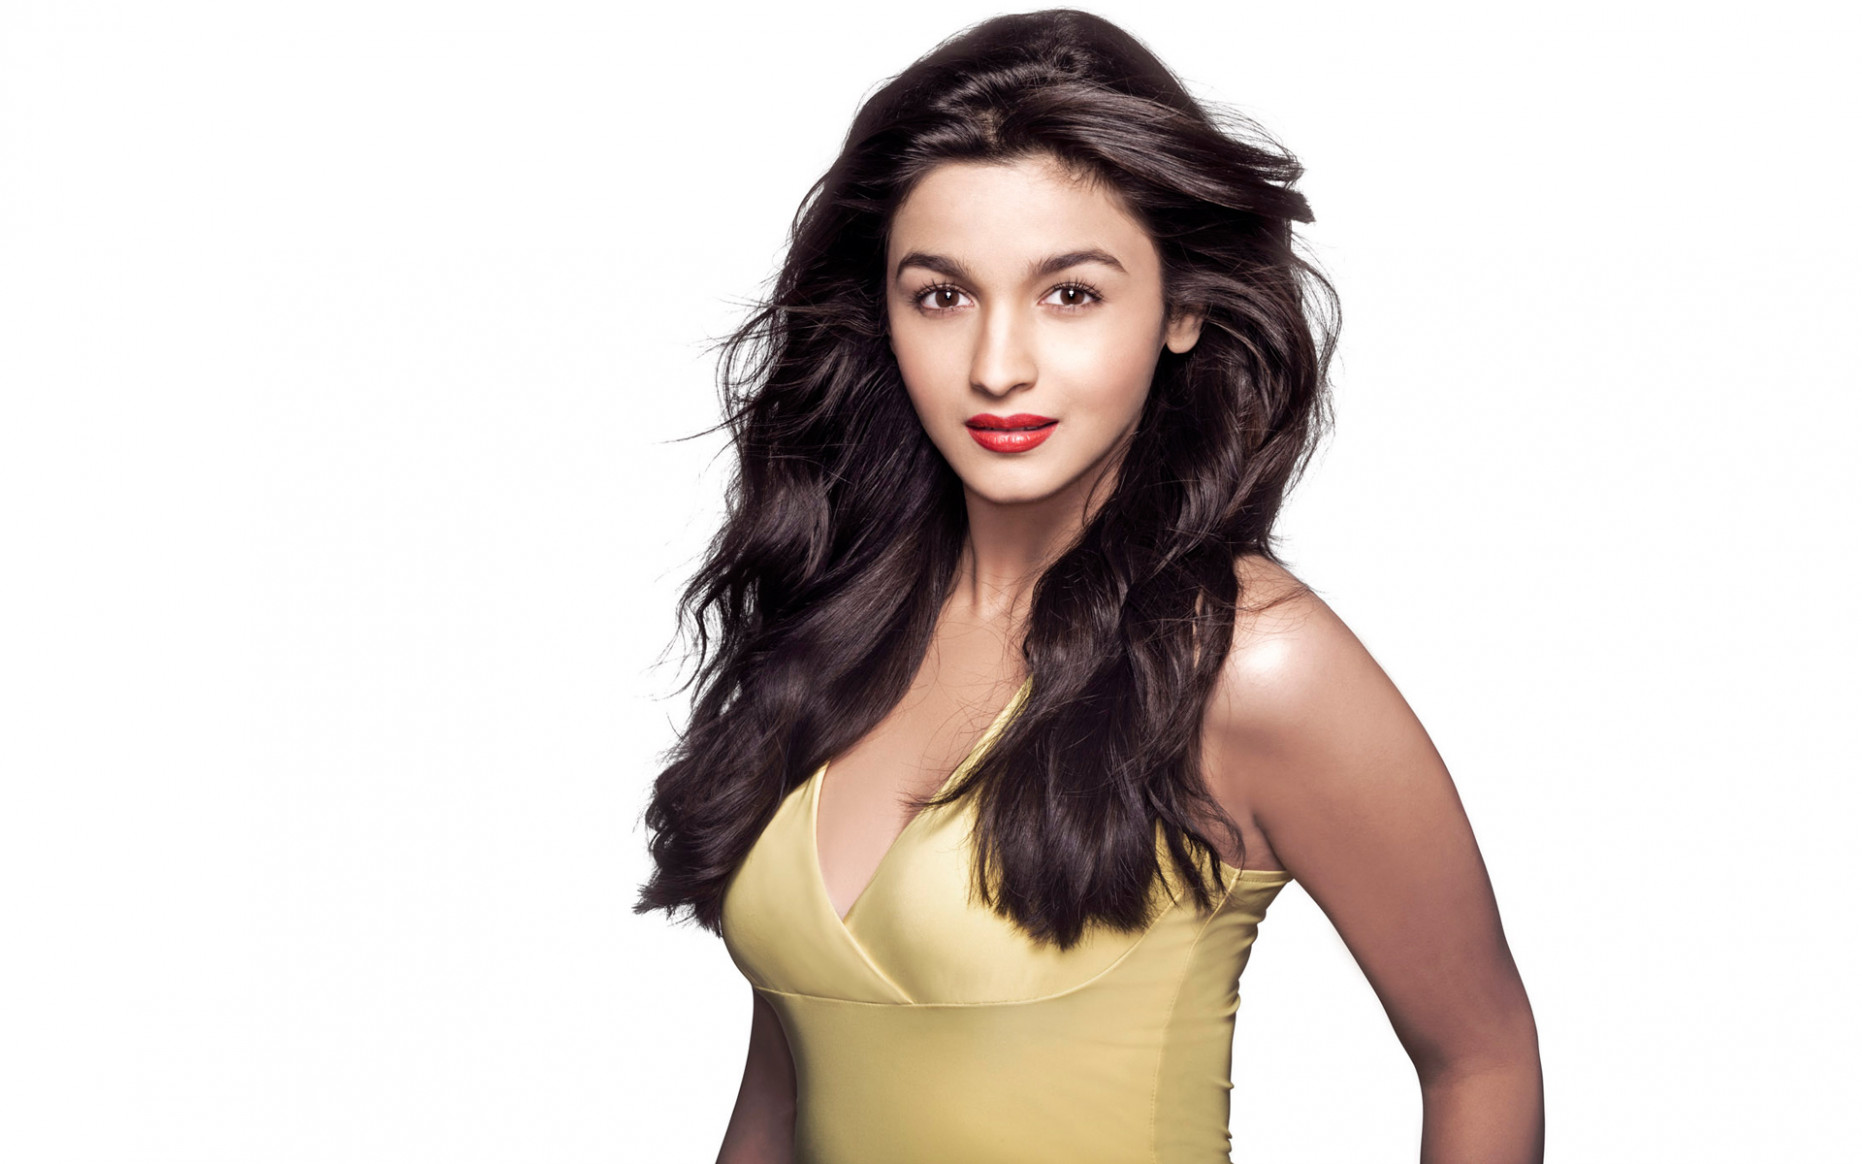 Bollywood Actress Alia Bhatt Wallpapers | HD Wallpapers ...